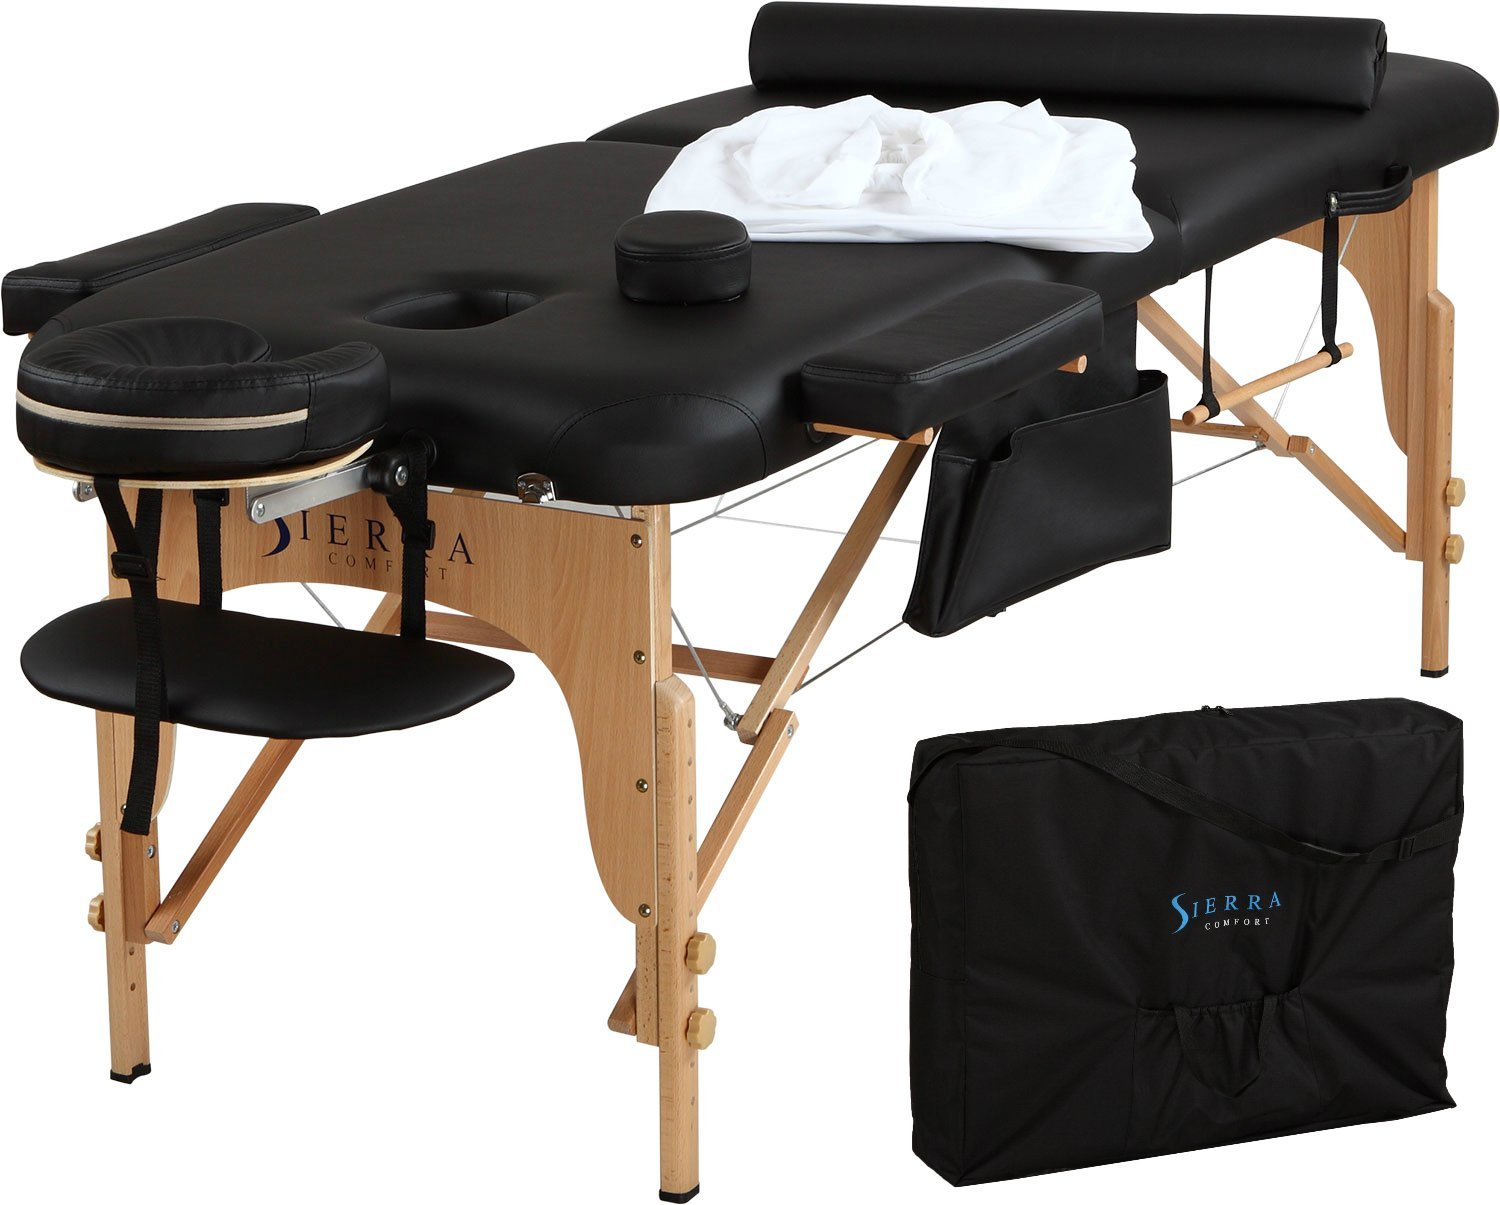 Sierra Comfort All Inclusive Best Massage Table